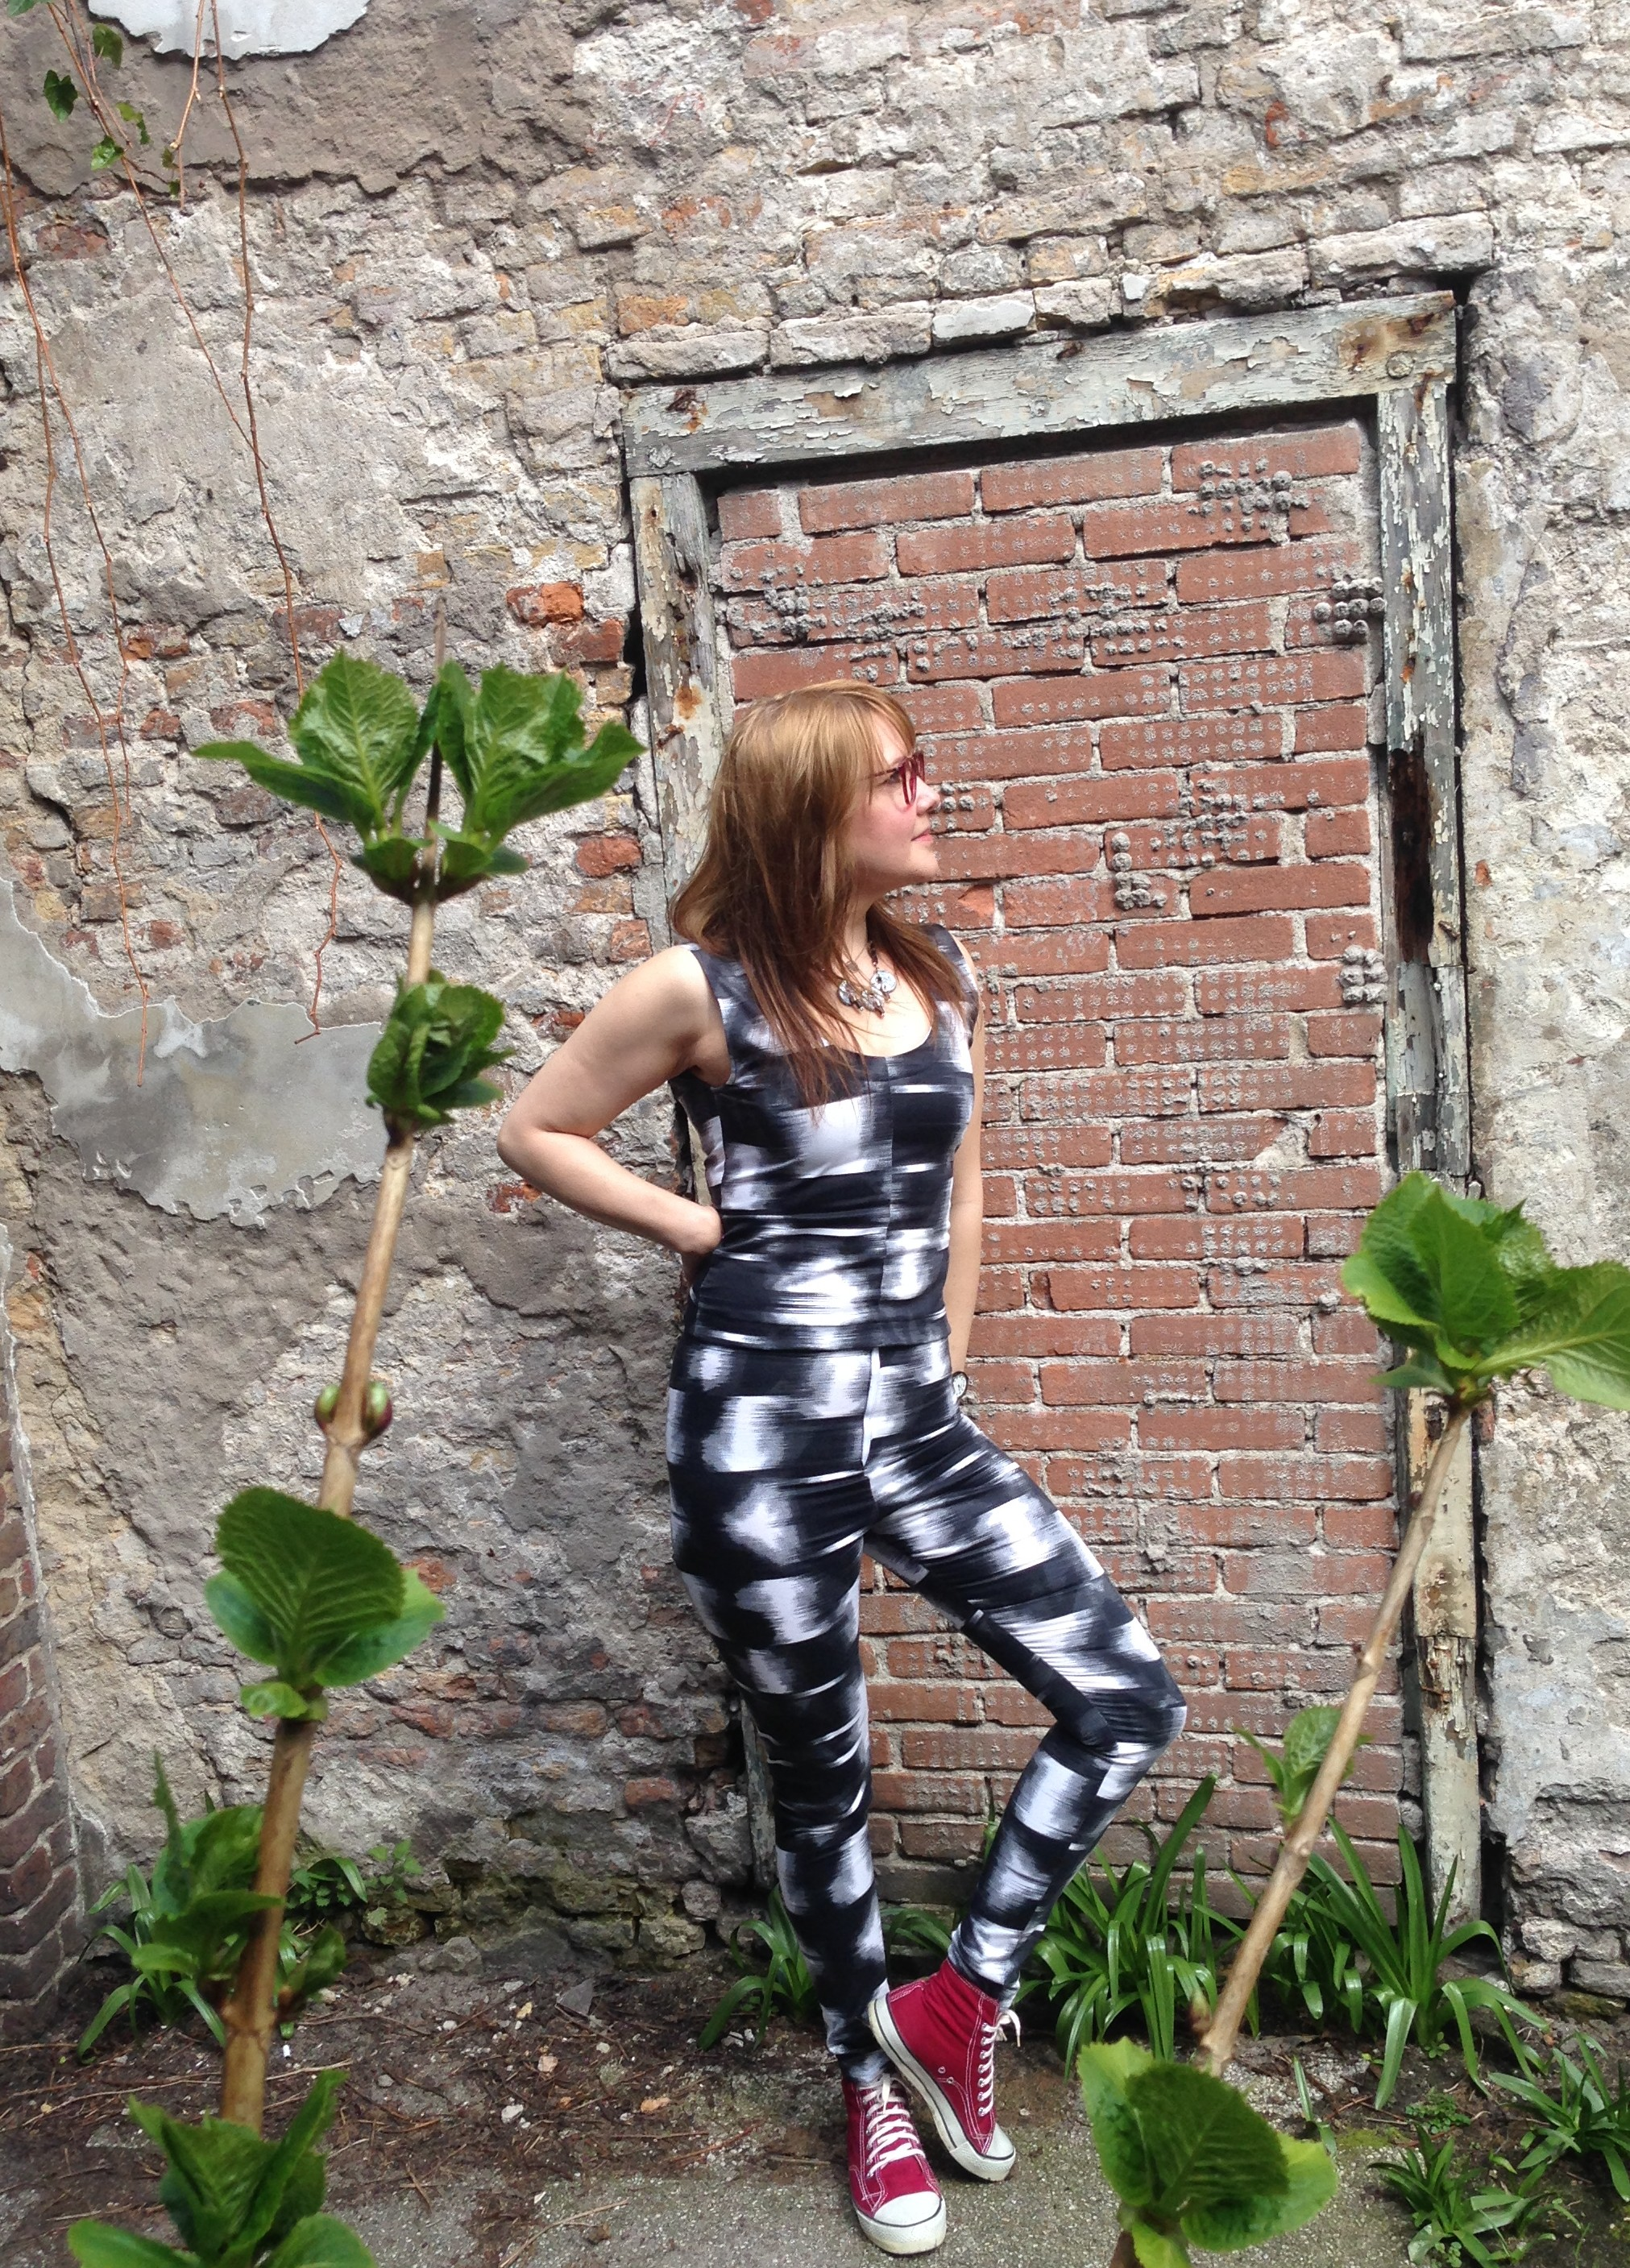 Susanna wearing self made top and trousers